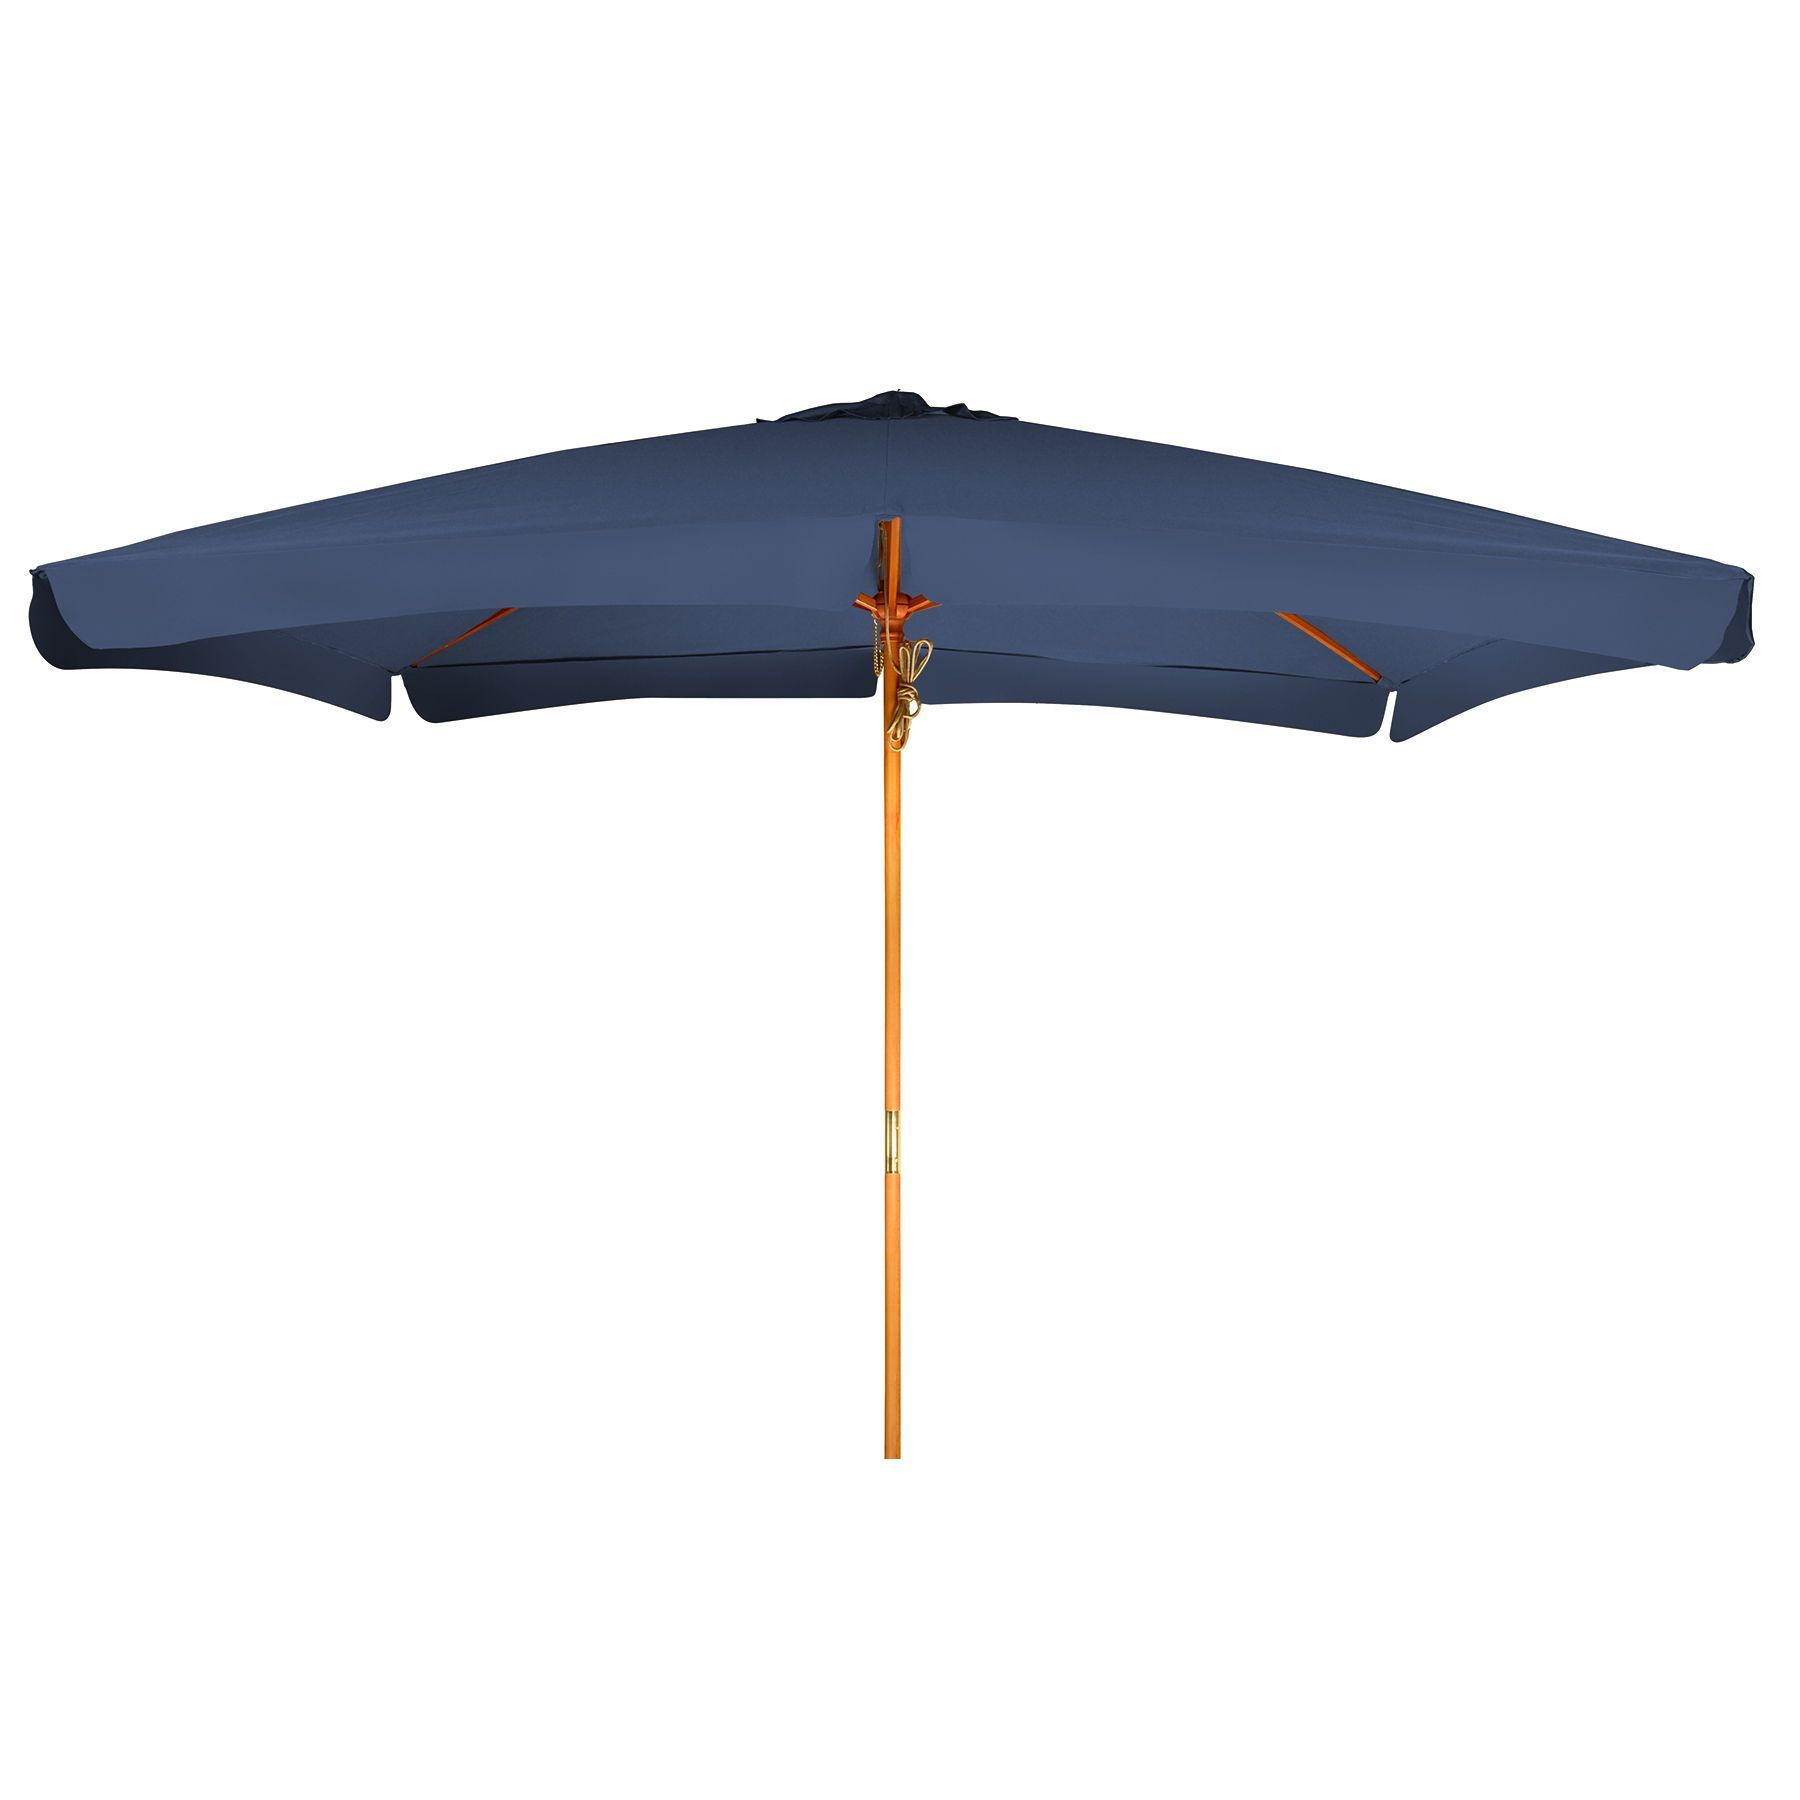 10u0027 Rectangular Wood Frame Patio Umbrella By Trademark Innovations (Blue),  Size 10 Foot (Polyester) #UMBWOOD RECT P